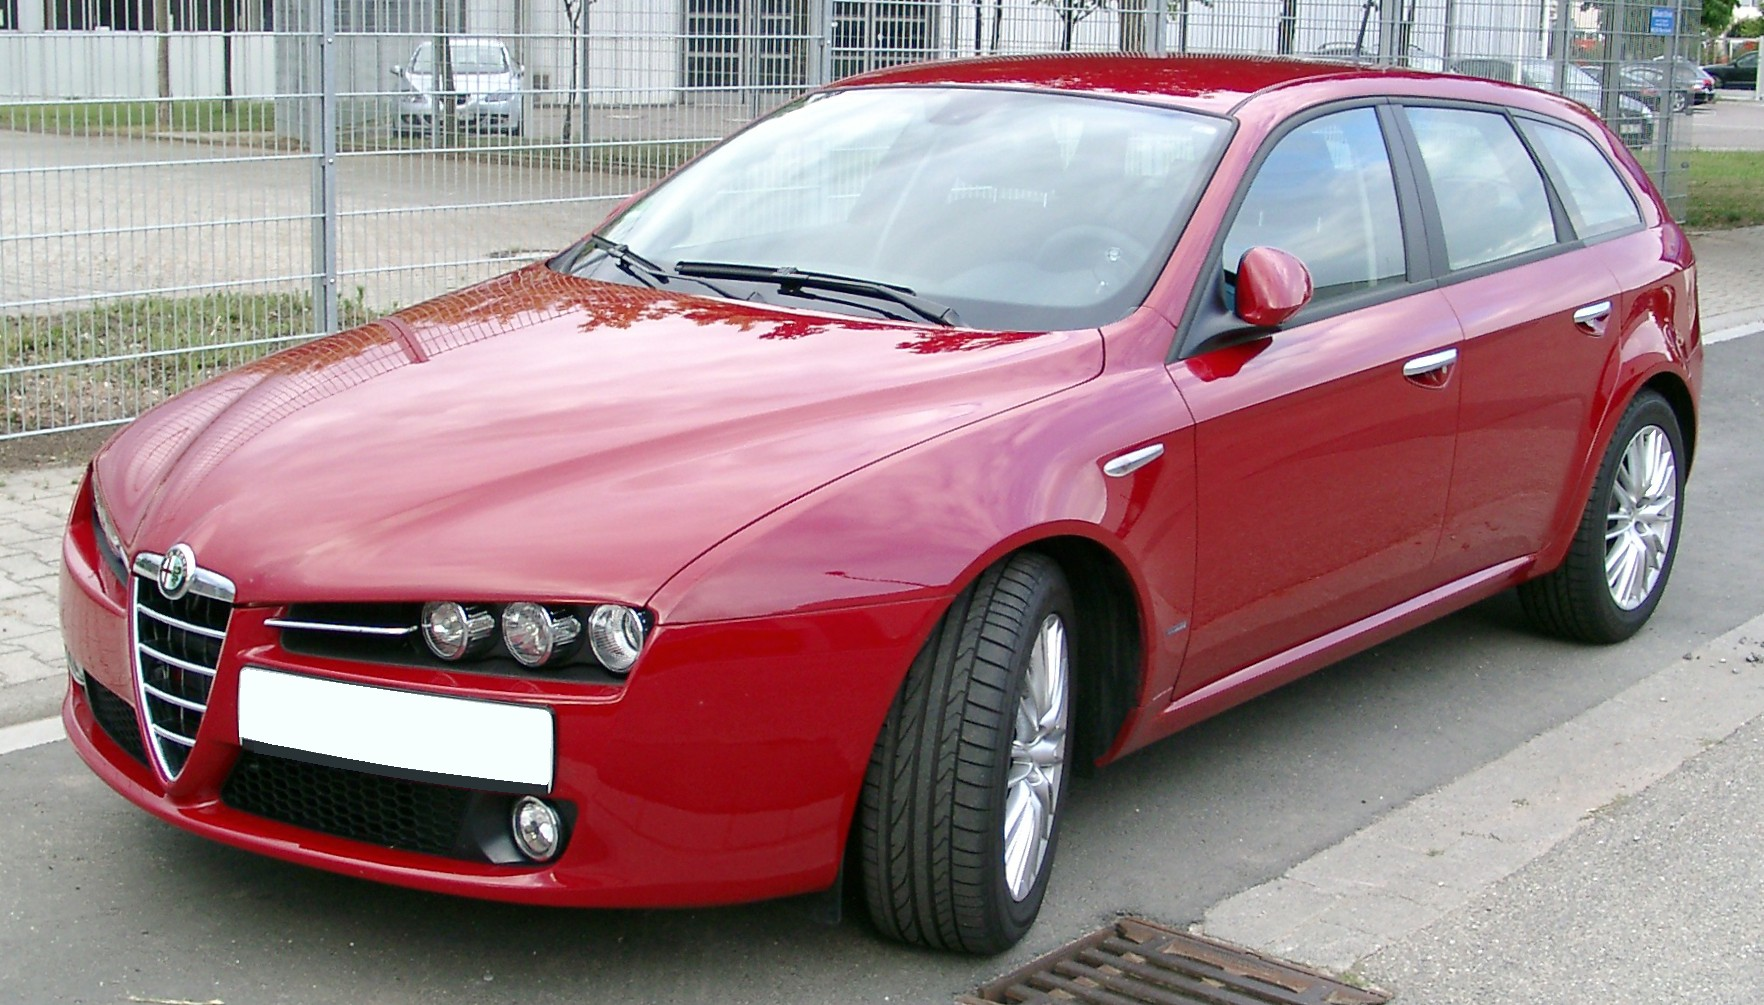 file alfa romeo 159 sw front wikimedia commons. Black Bedroom Furniture Sets. Home Design Ideas